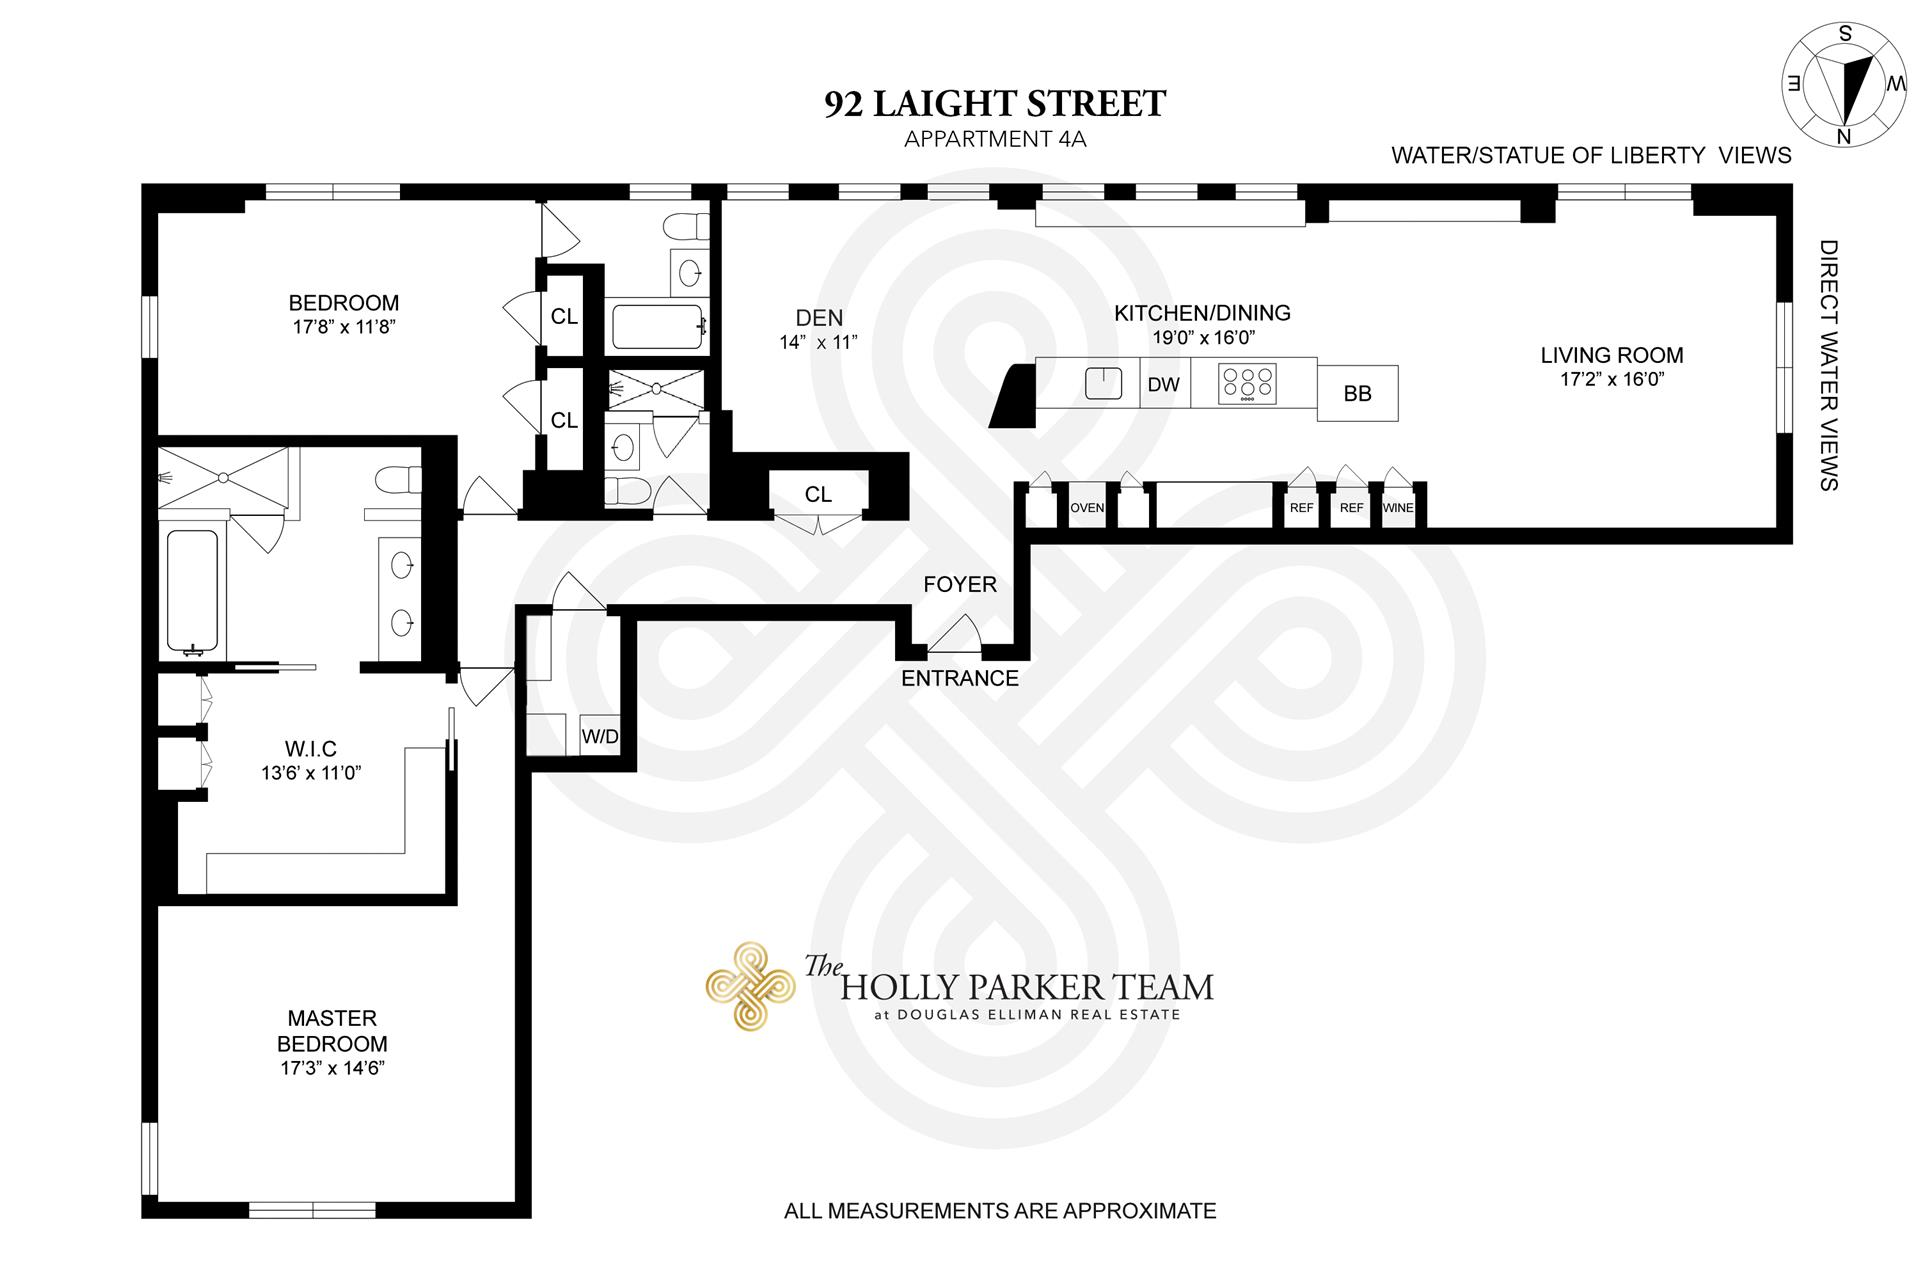 Floor plan of RIVER LOFTS, 92 Laight St, 4A - TriBeCa, New York